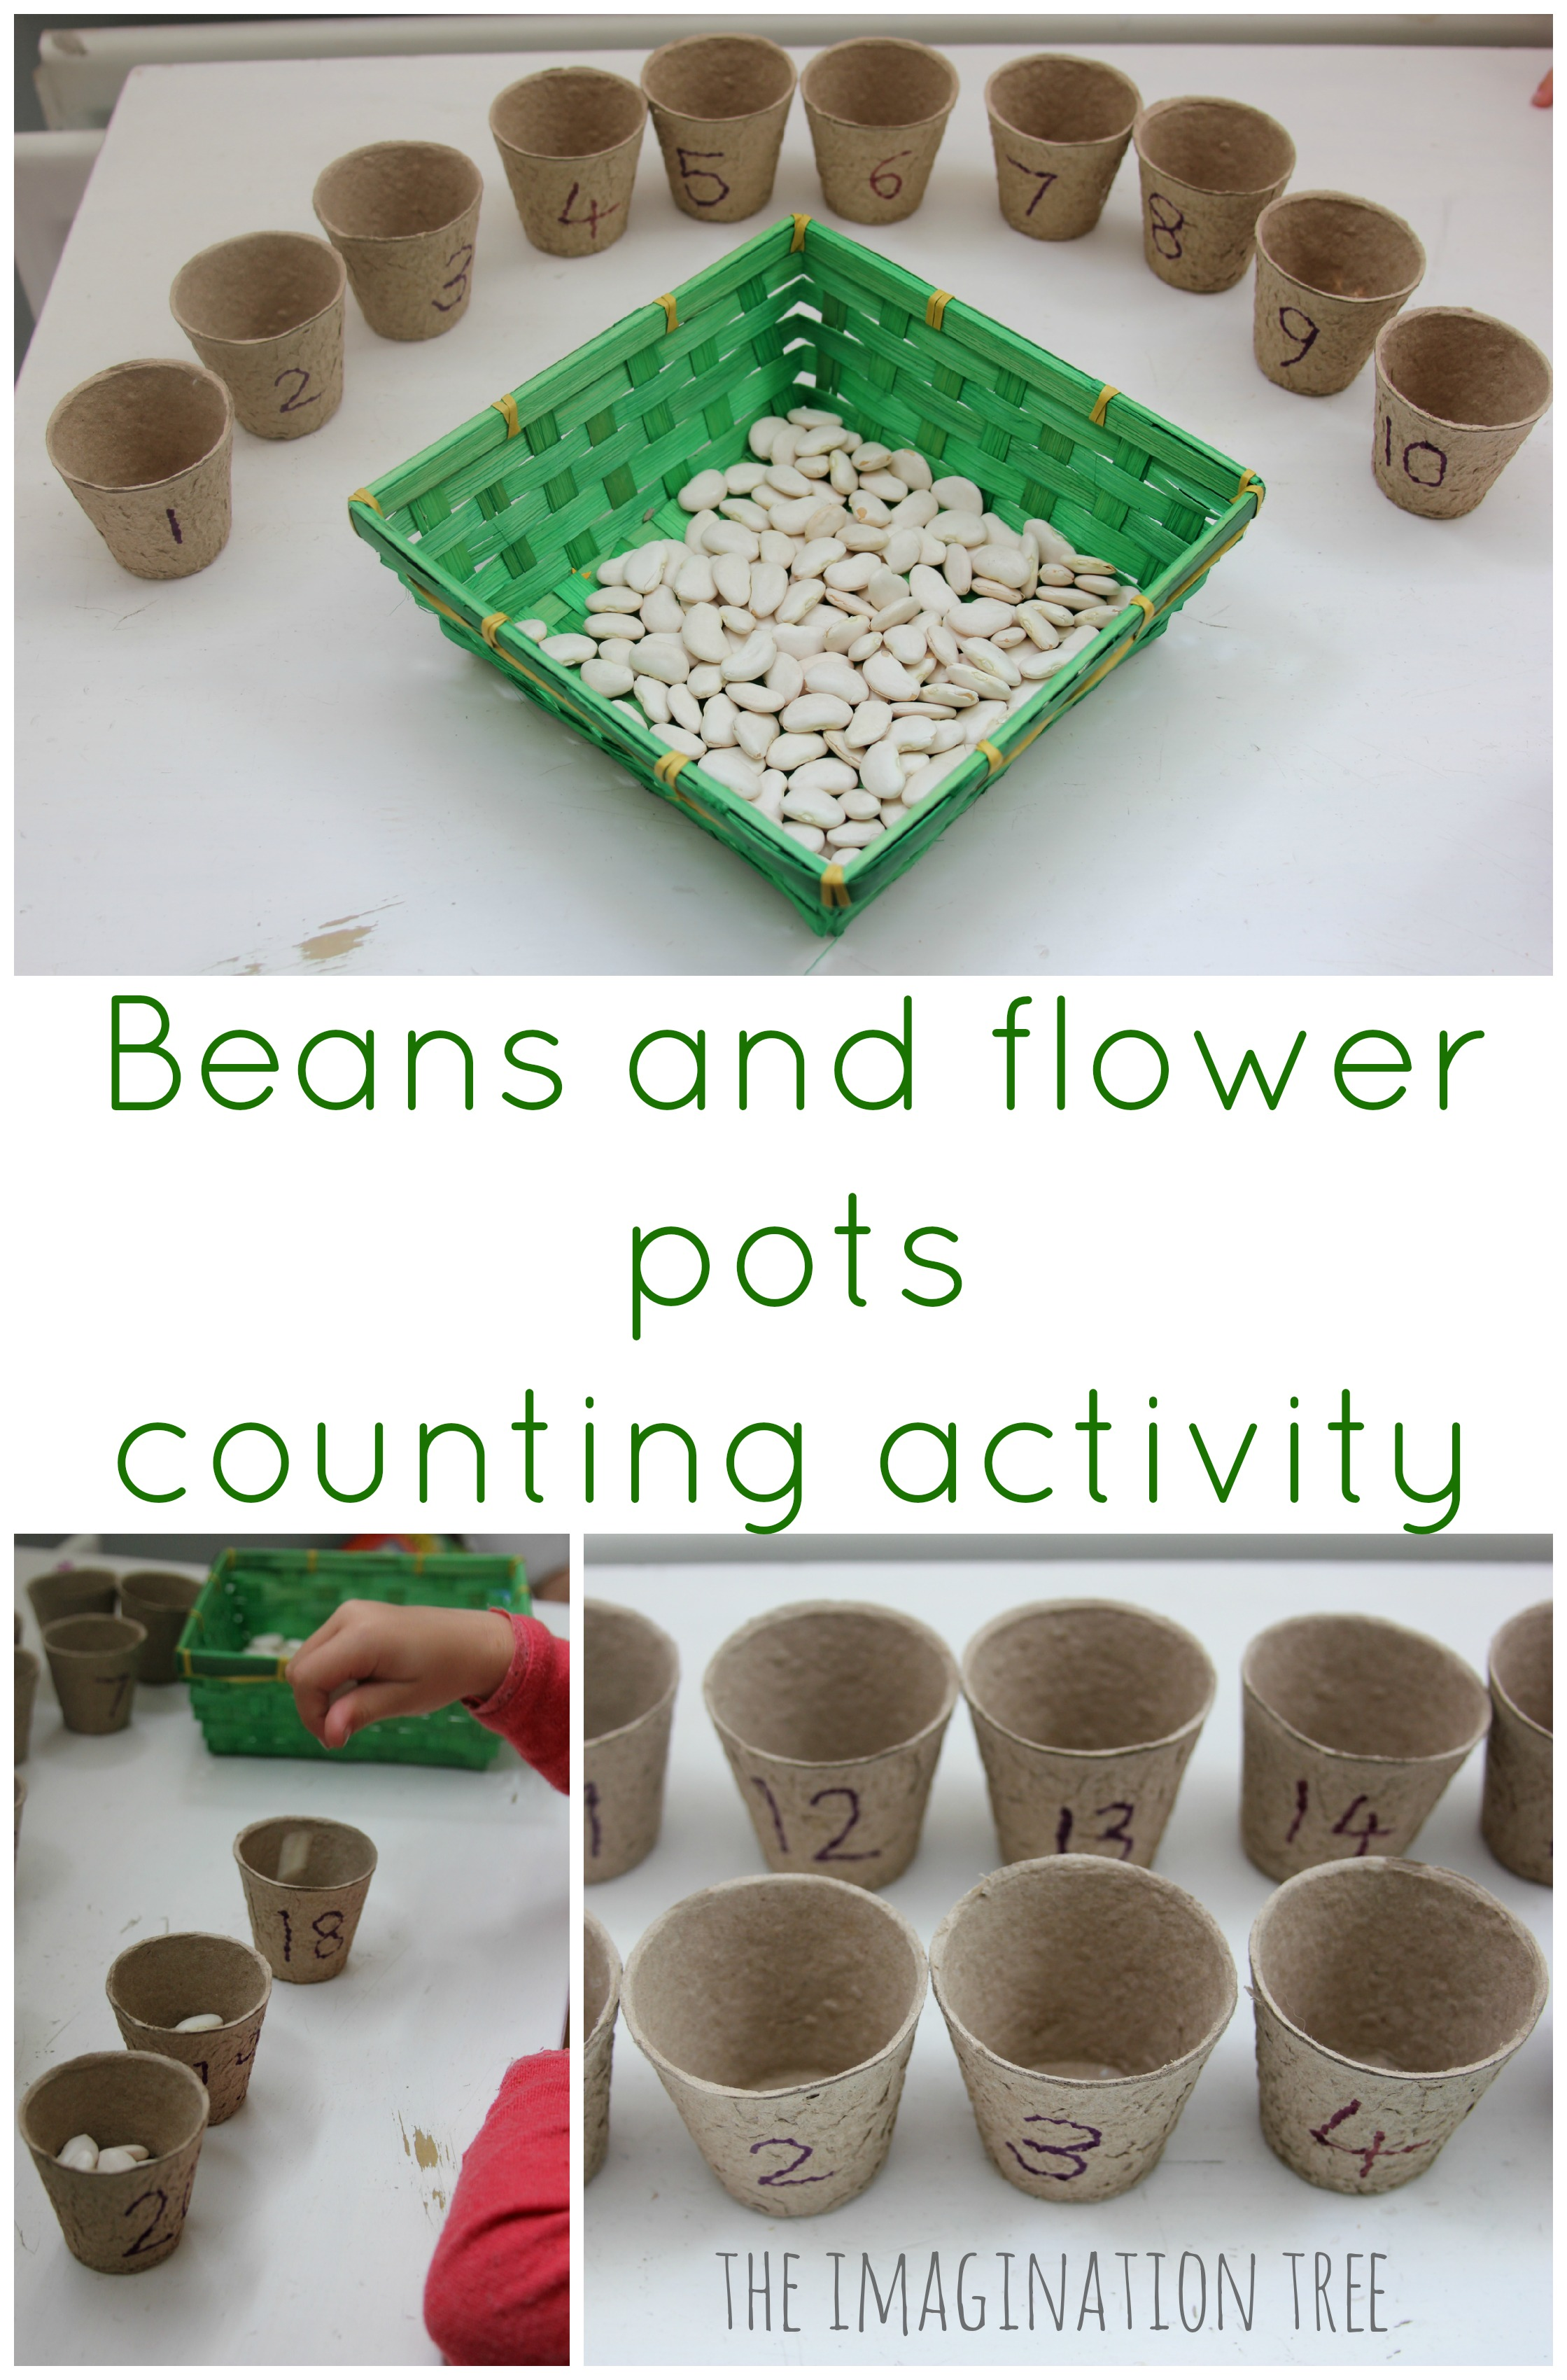 Beans And Flower Pots Counting Activity The Imagination Tree